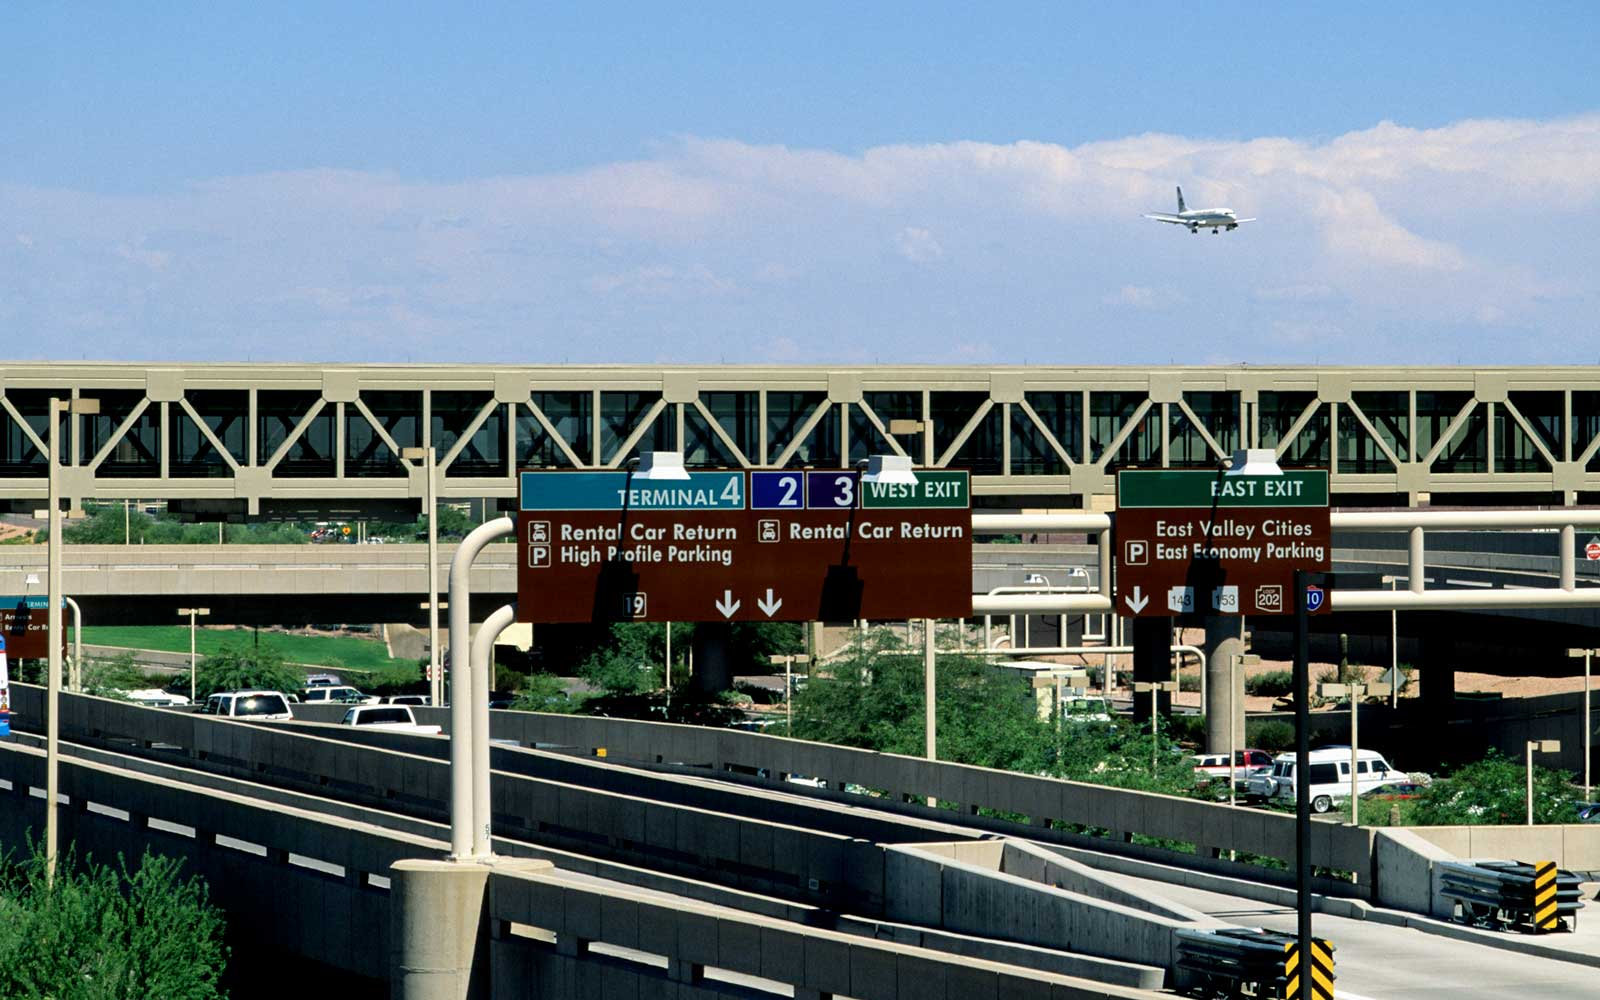 Aircraft over Phoenix Sky Harbor airport, with traffic signs